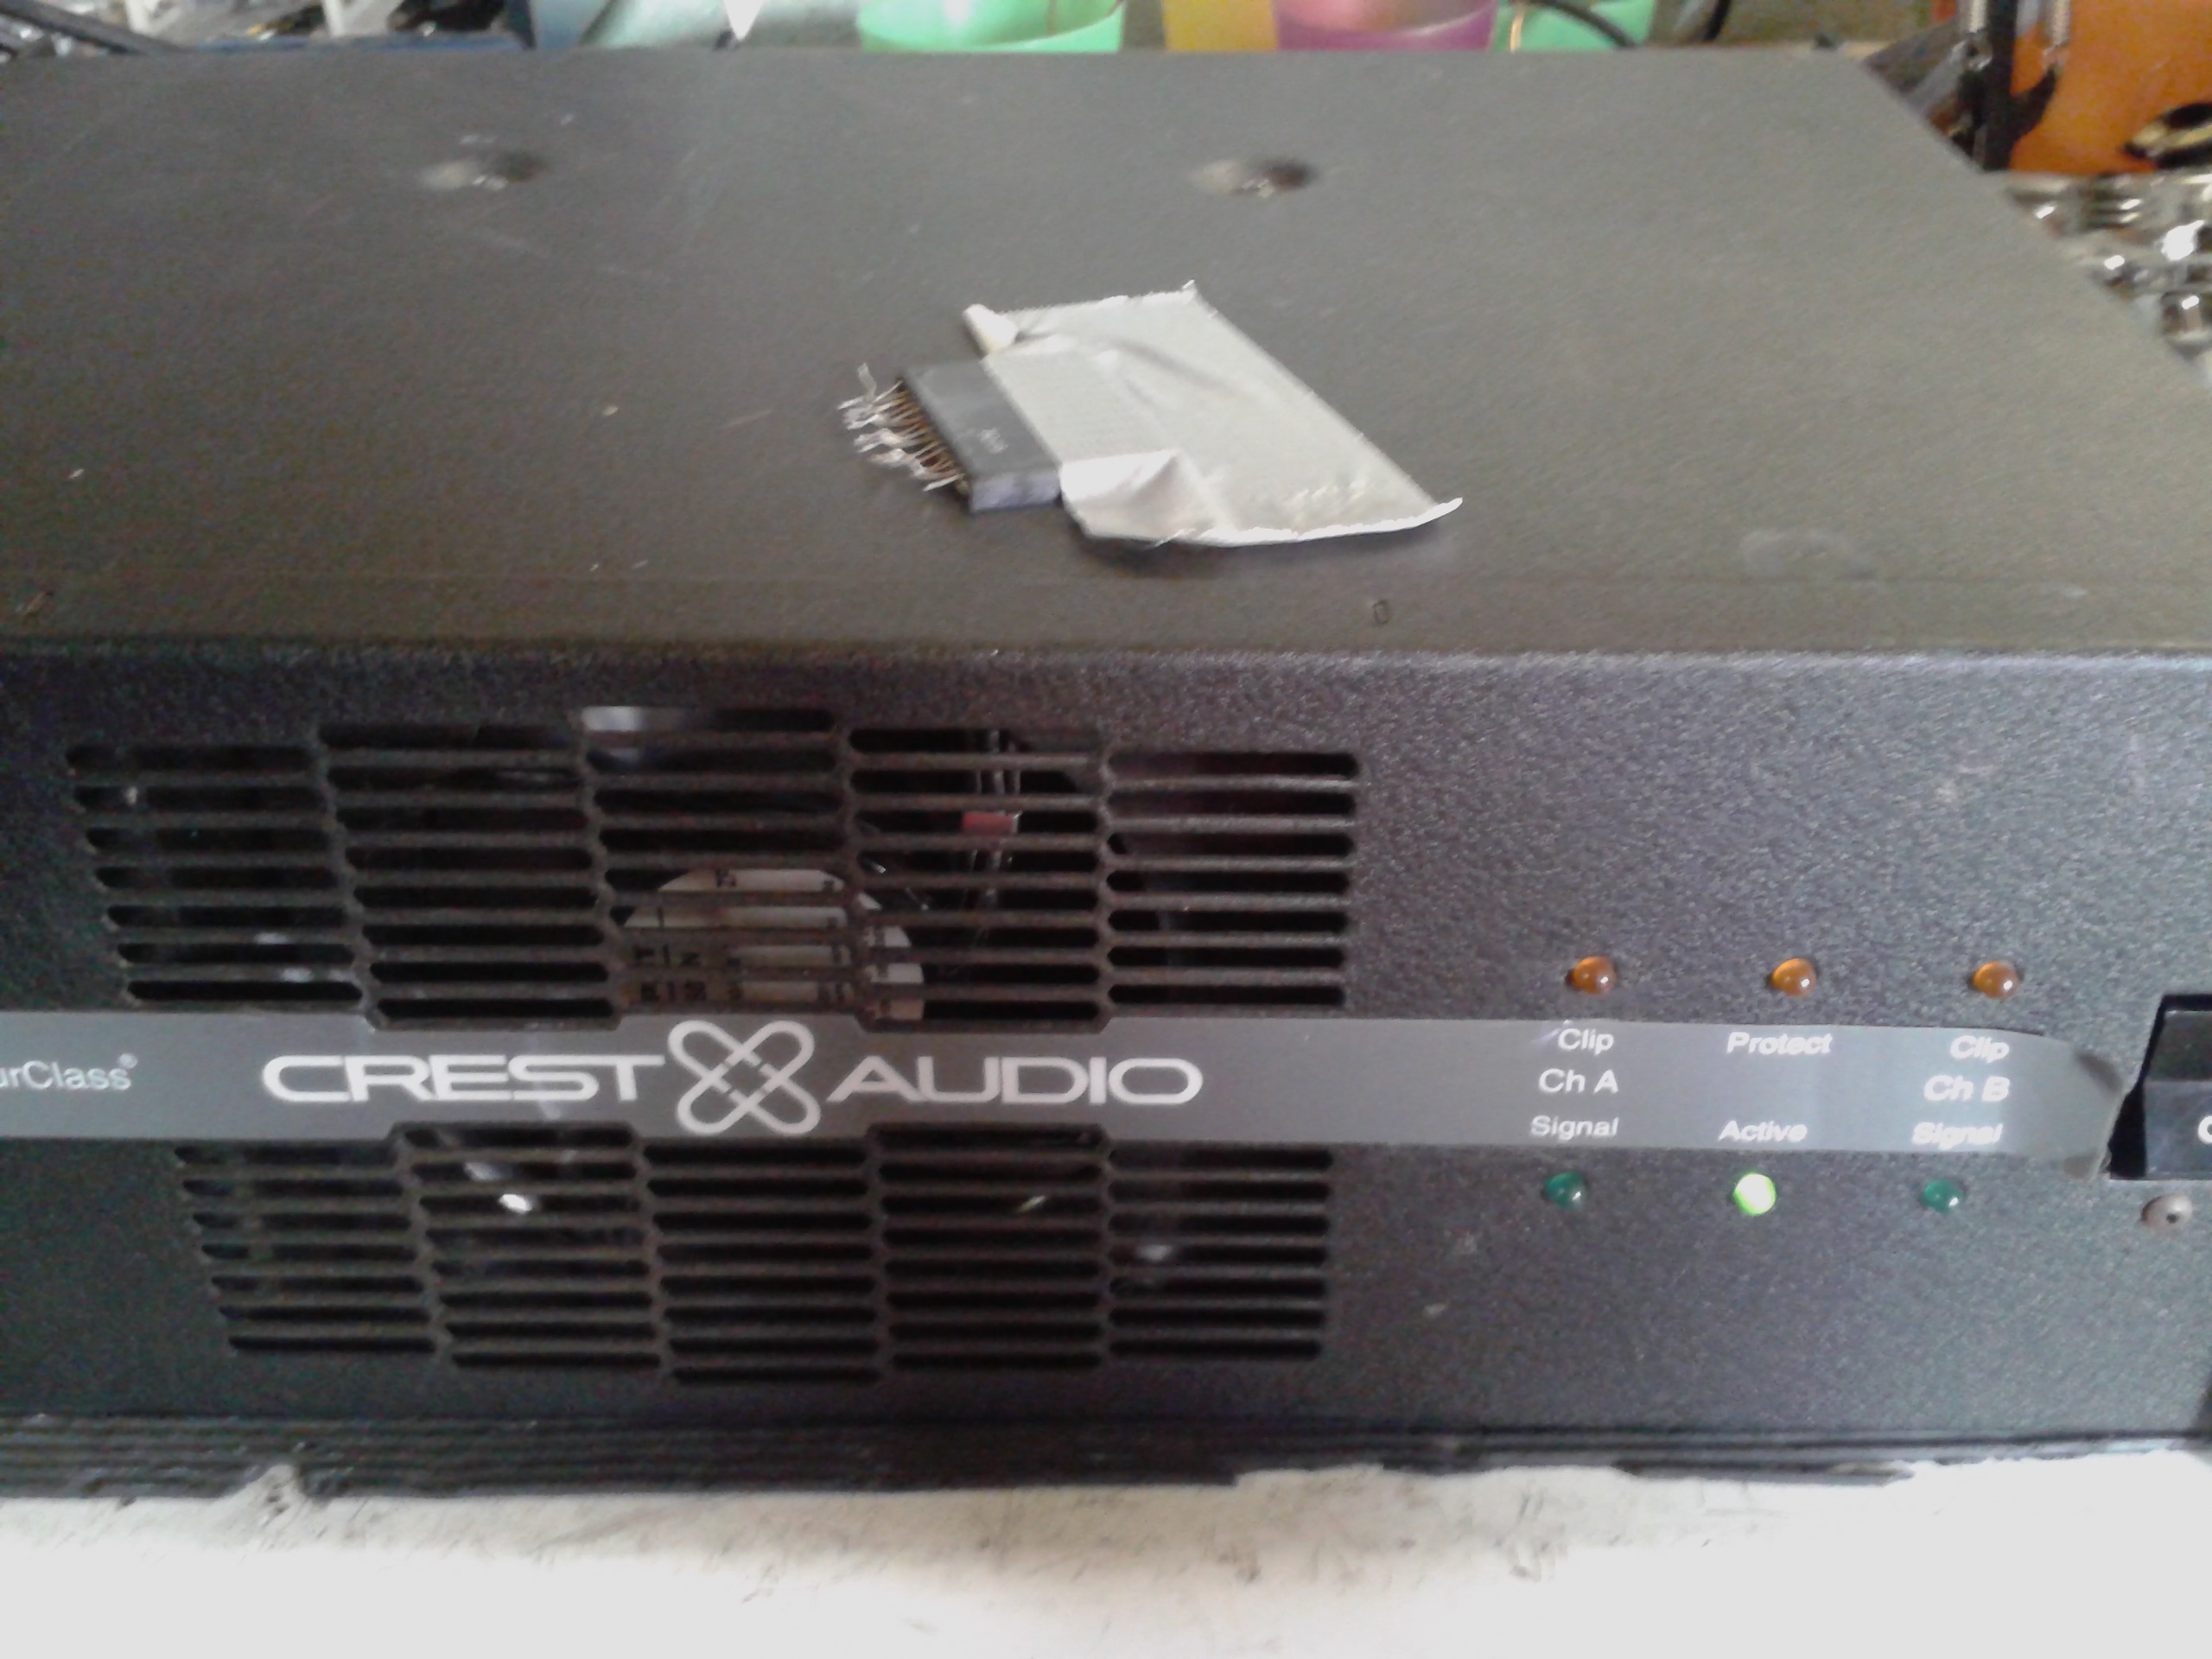 Crest Vs1100 Amplifier Repair Stk Audio Circuit Front View Showing Power On Ready For Shipping Back To The Customer